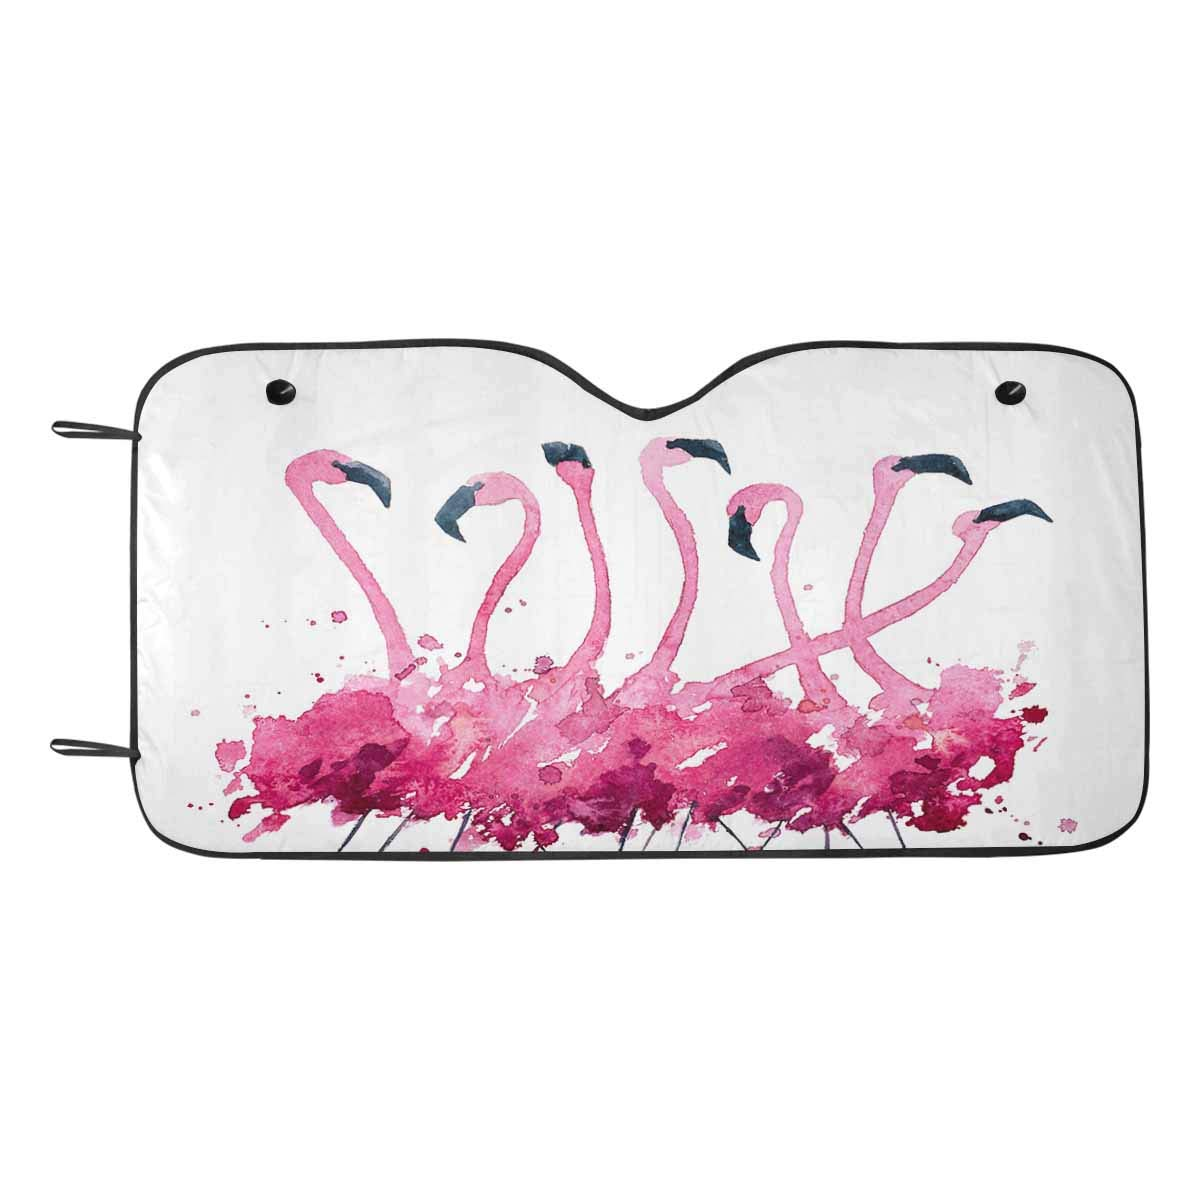 INTERESTPRINT Flamingos Watercolor Painting Auto Windshield Visor 55 x 29.53 Inches Cover Keep Vehicle Cool